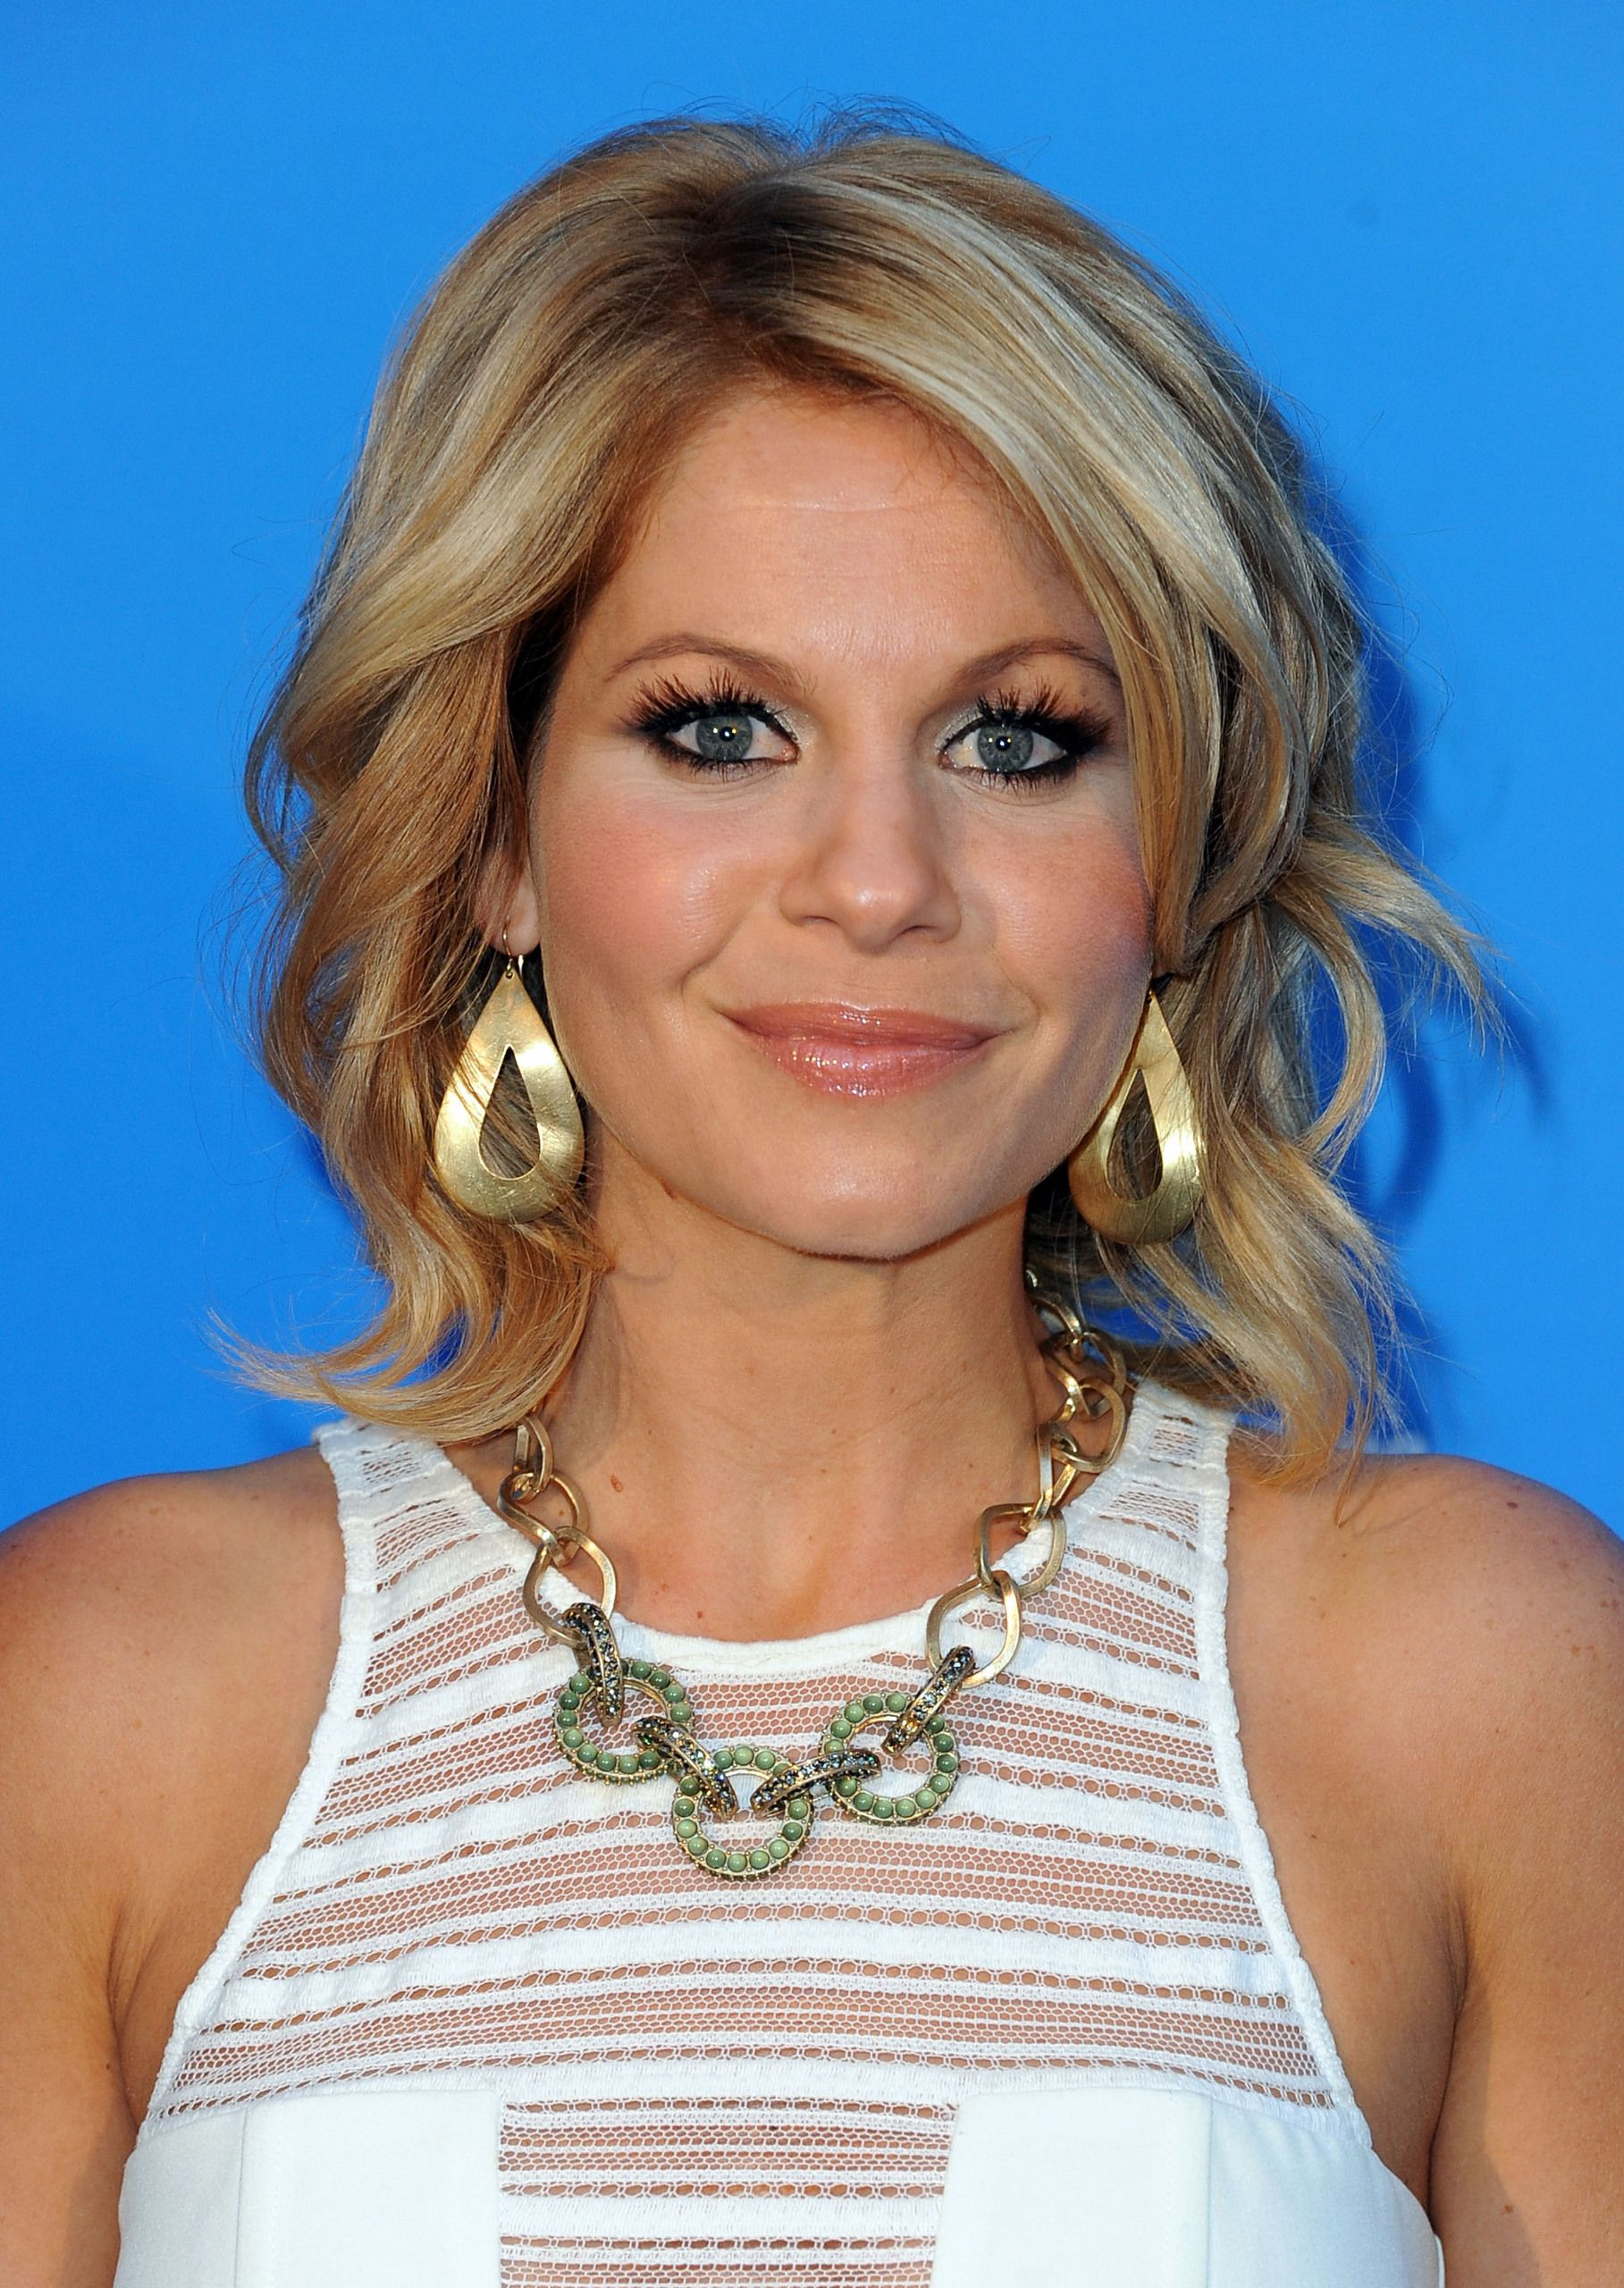 candace cameron haircut and waves | hair & beauty that i